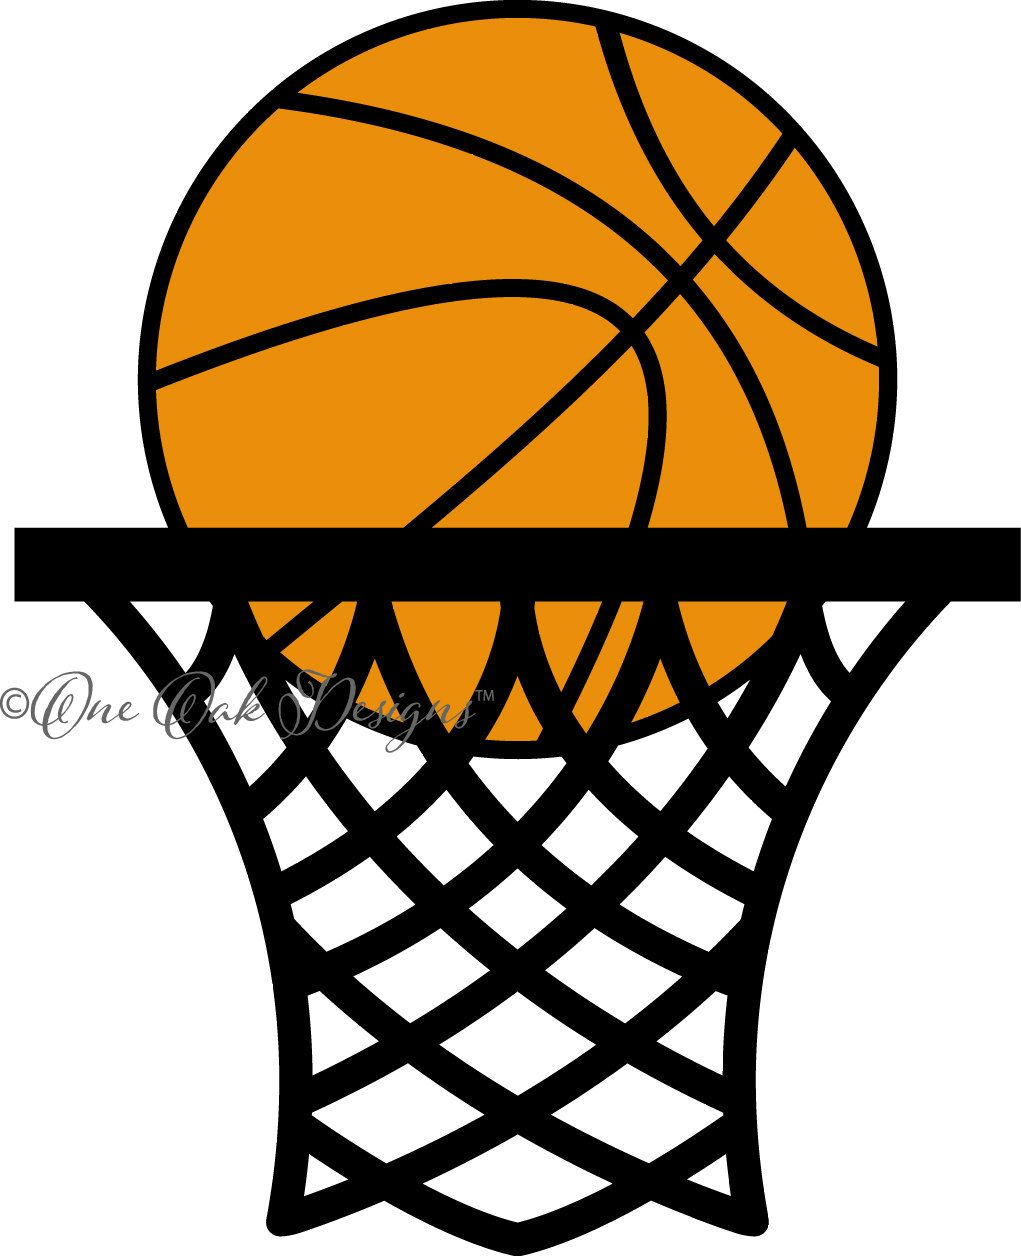 International Basketball Day Box Is Commercially Available Clipart Basketball International Basketball Day Basketball Png And Vector With Transparent Backgro Graphic Design Background Templates Free Graphic Design Fashion Gift Box